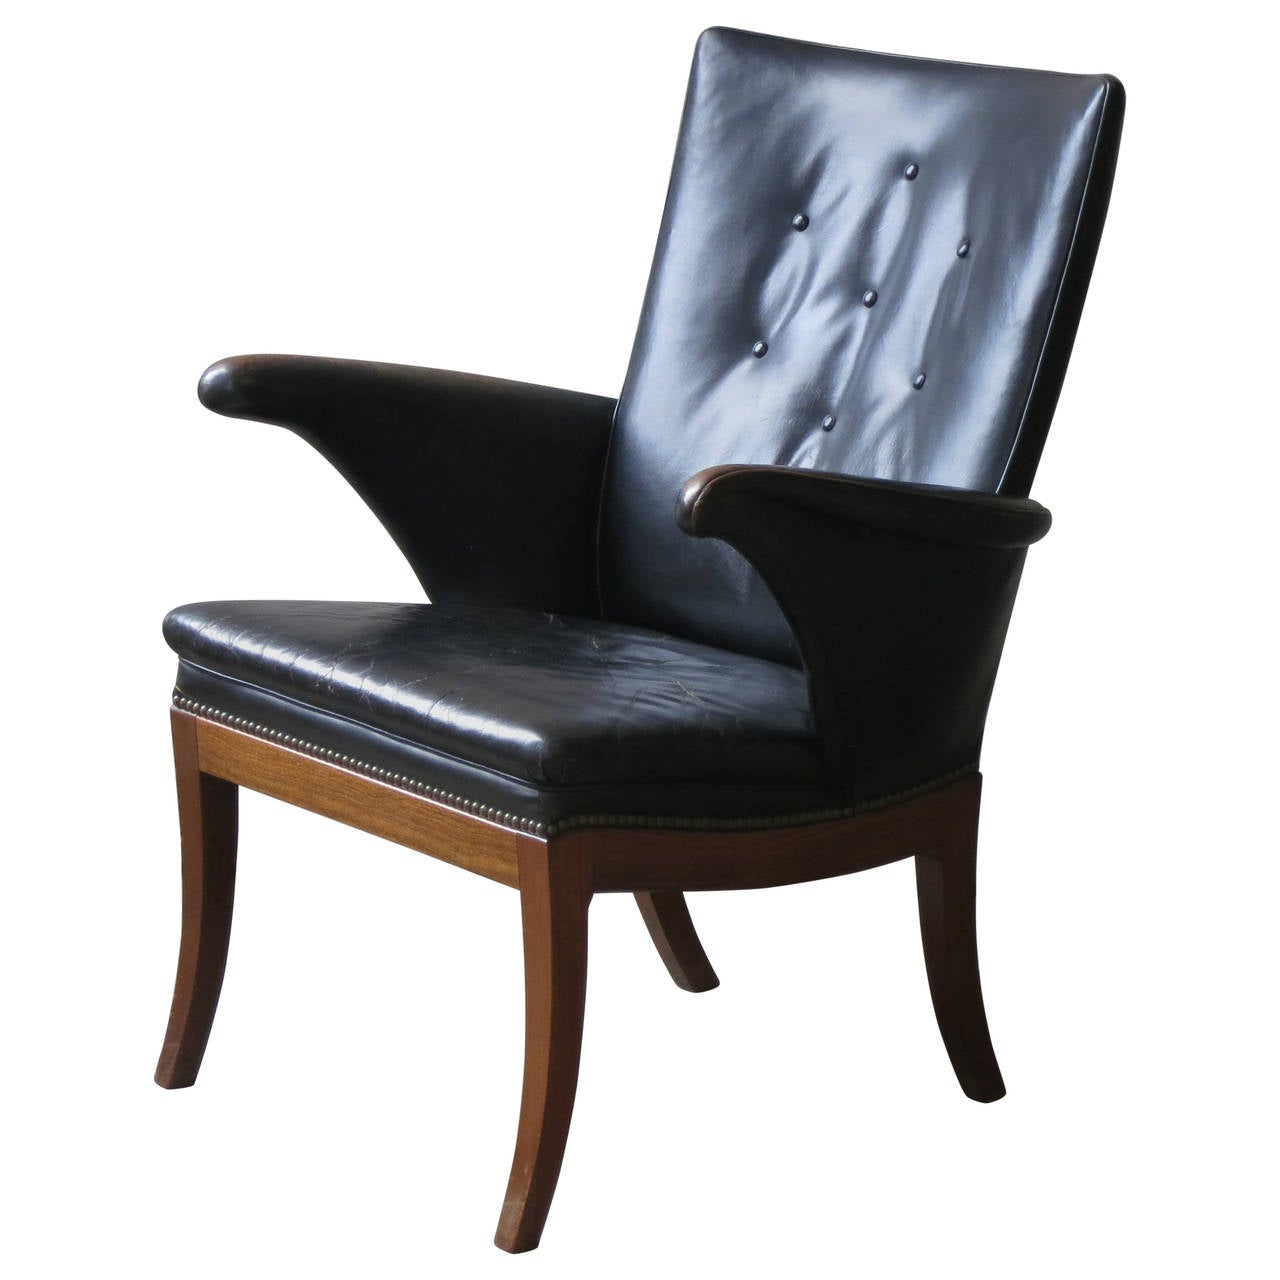 1930s Armchair in Original Black Leather by Frits Henningsen 1